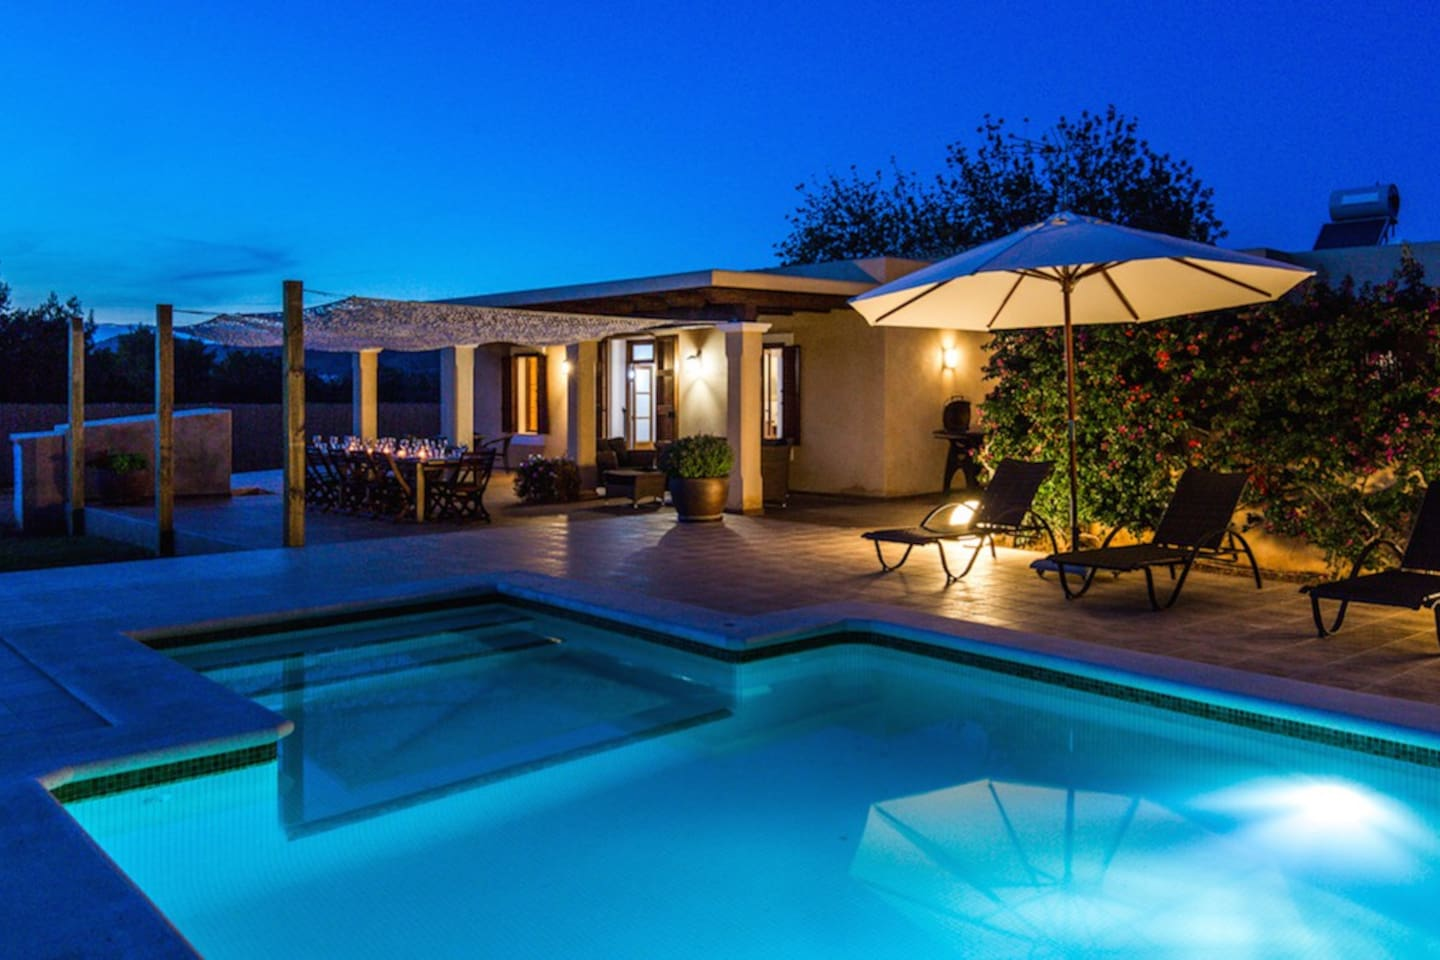 Enjoy the atmosphere at our swimming pool at night